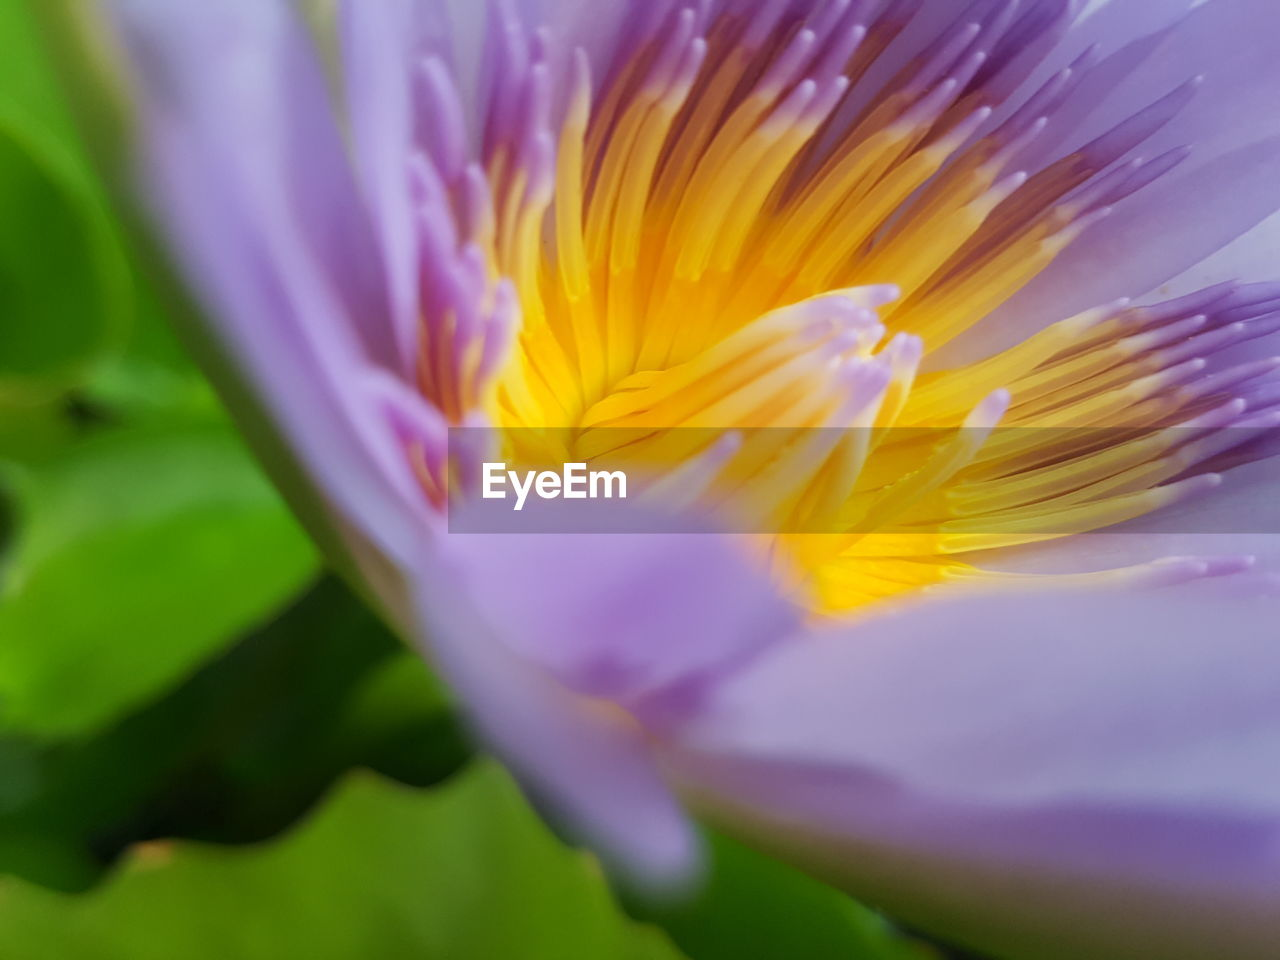 flower, vulnerability, fragility, flowering plant, beauty in nature, freshness, plant, petal, close-up, flower head, inflorescence, growth, selective focus, yellow, no people, nature, pollen, day, purple, sepal